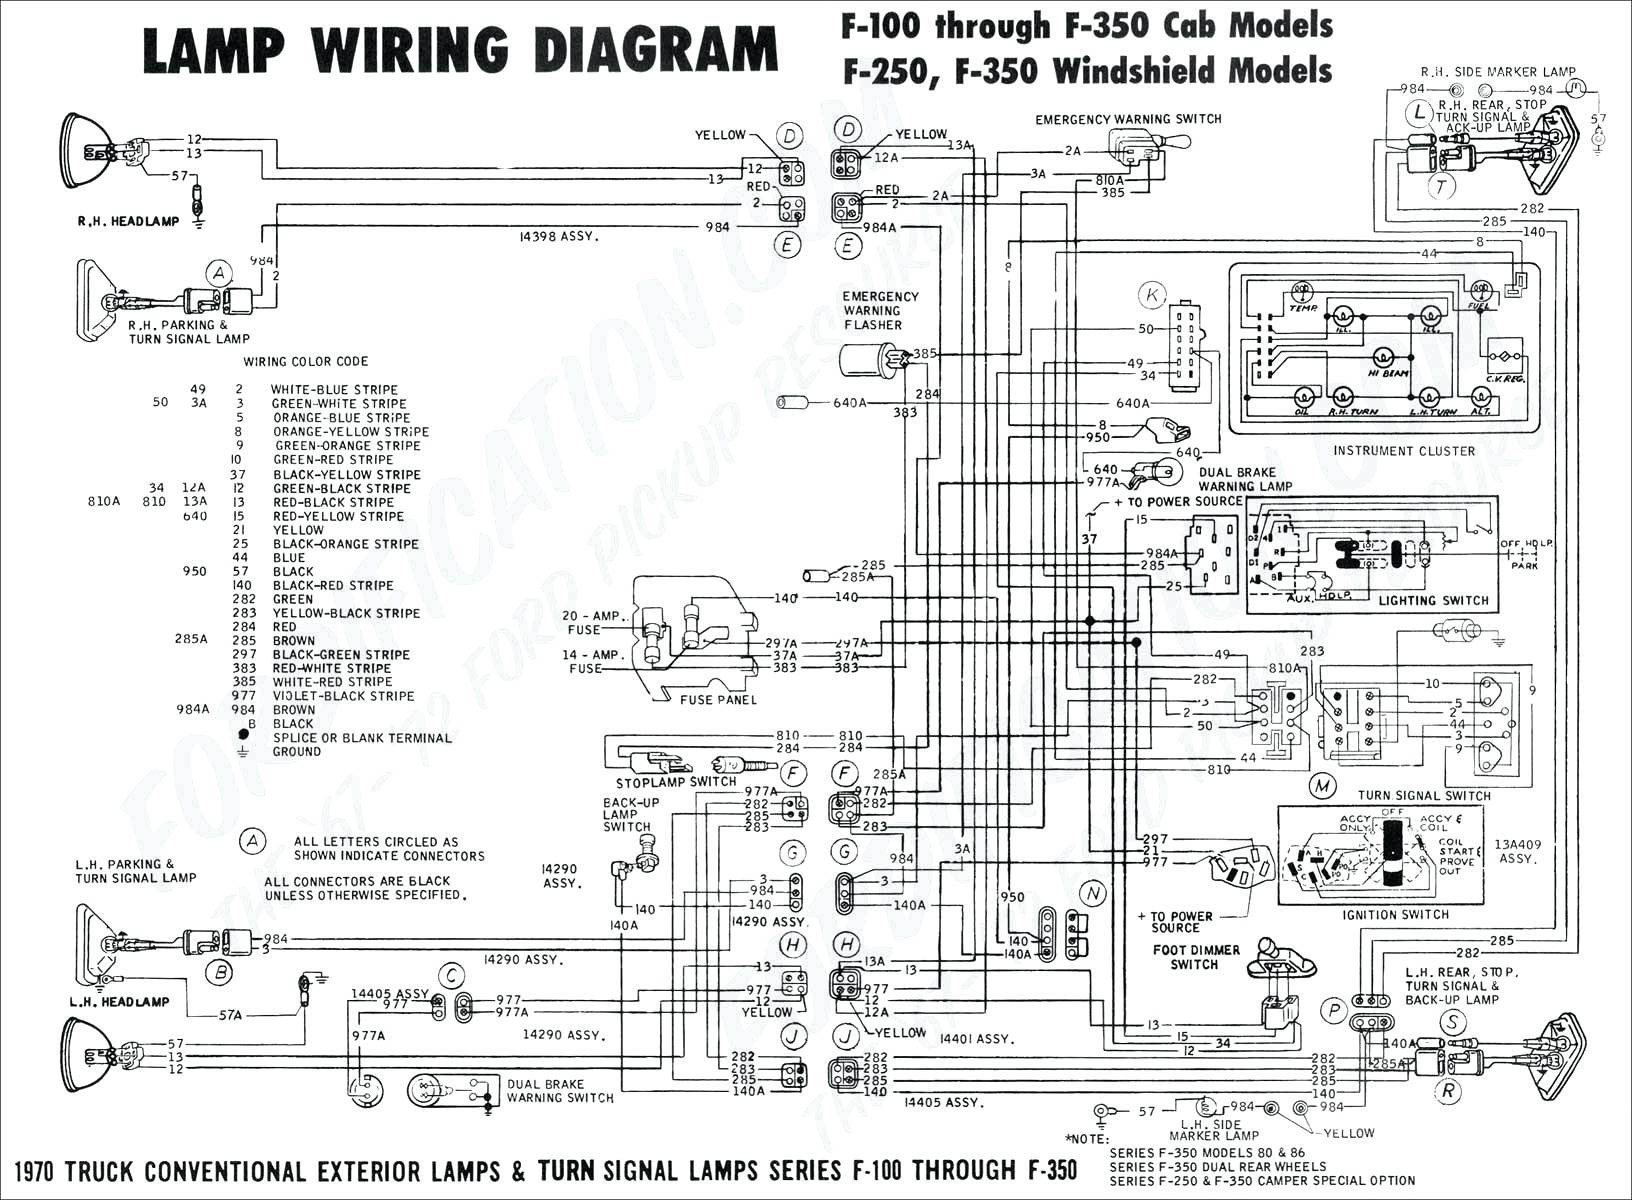 2003 Ford Focus Vin – Simple Wiring Diagram - 03 F250 Trailer Wiring Diagram